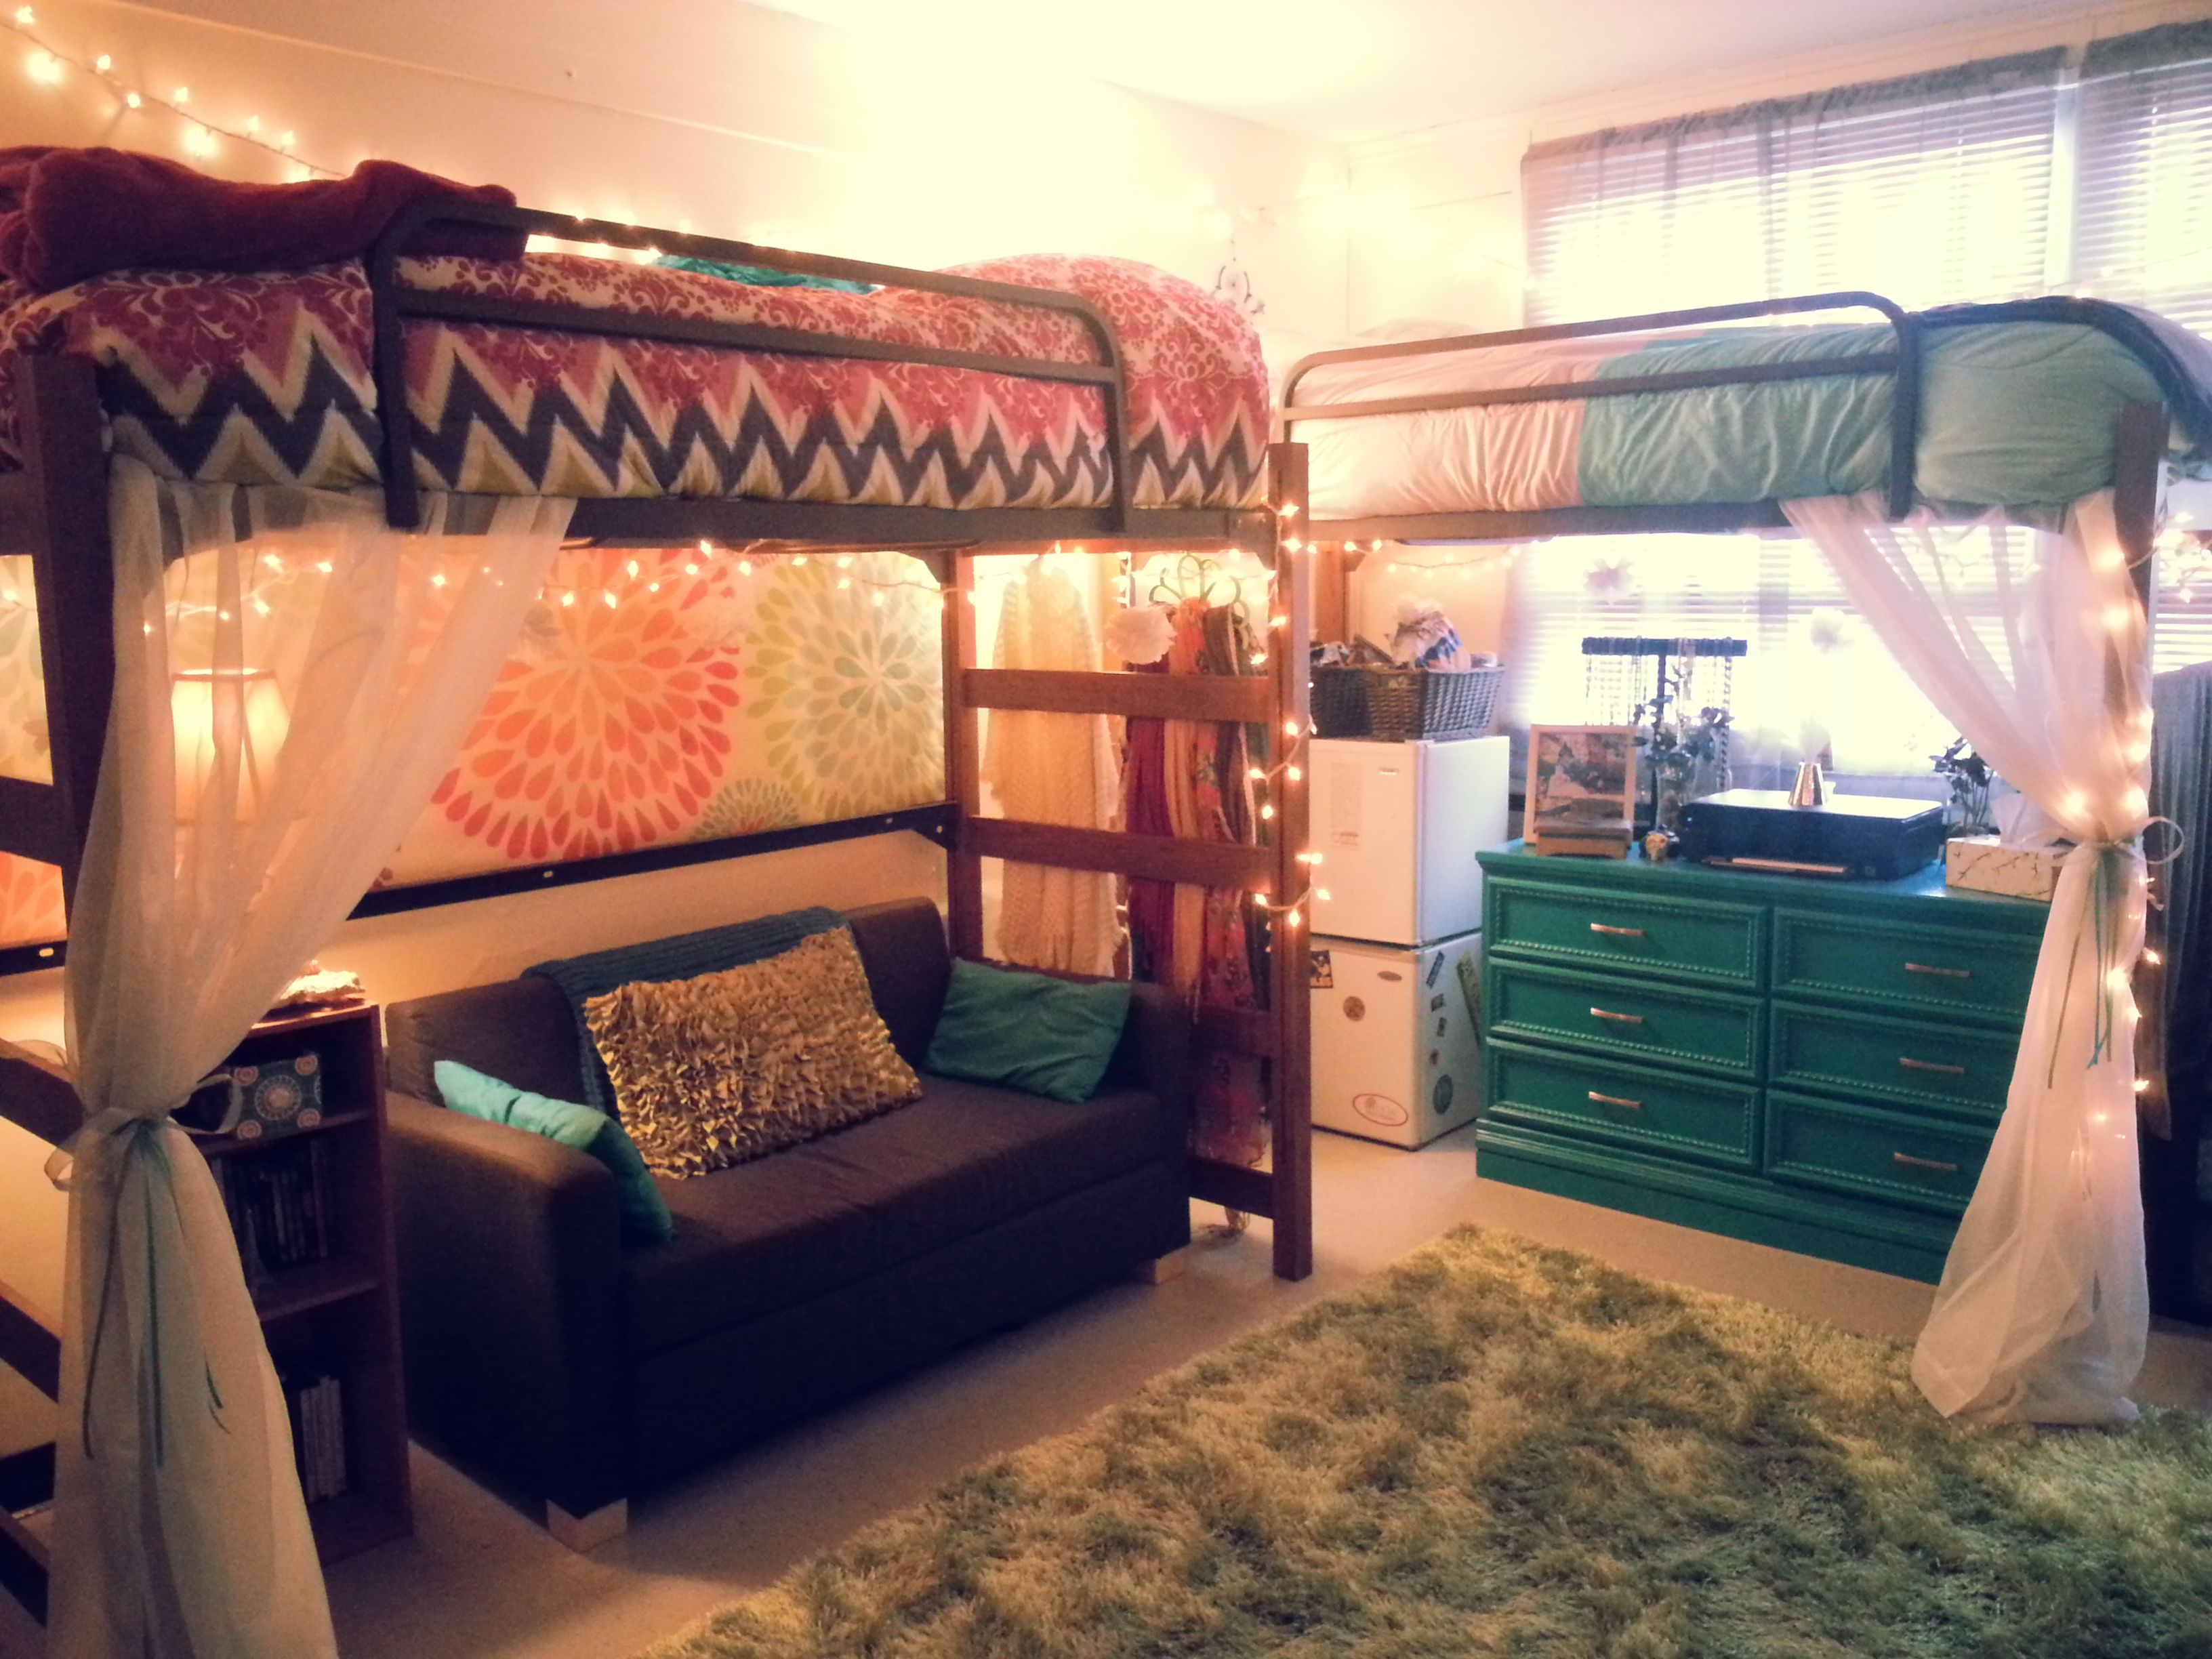 UGA Best Female Room Photo Contest | Dorm Designs | Pinterest ...